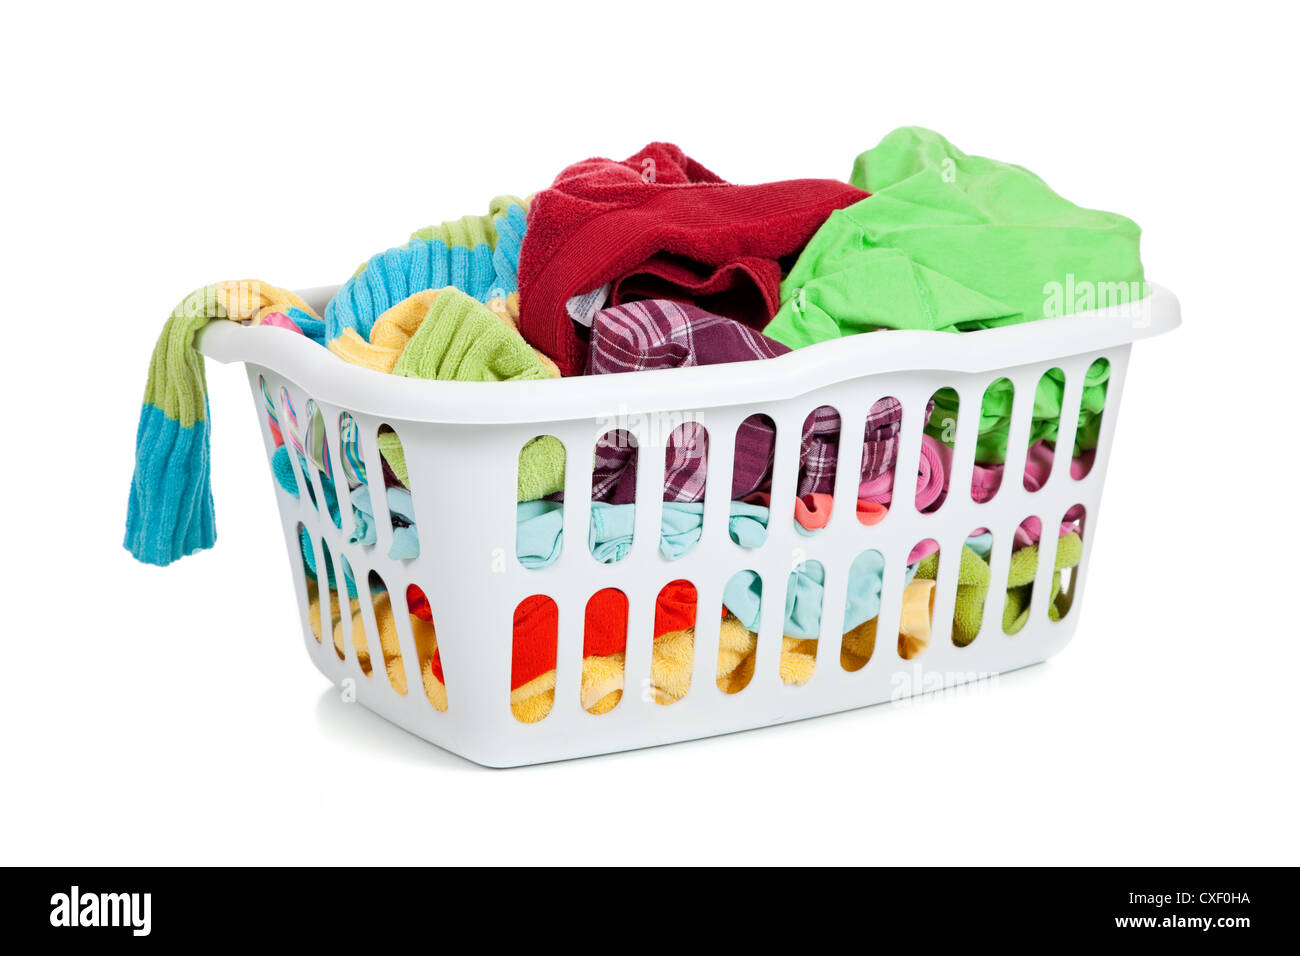 Clothes Baskets White Plastic Laundry Basket Full Of Dirty Clothes Stock